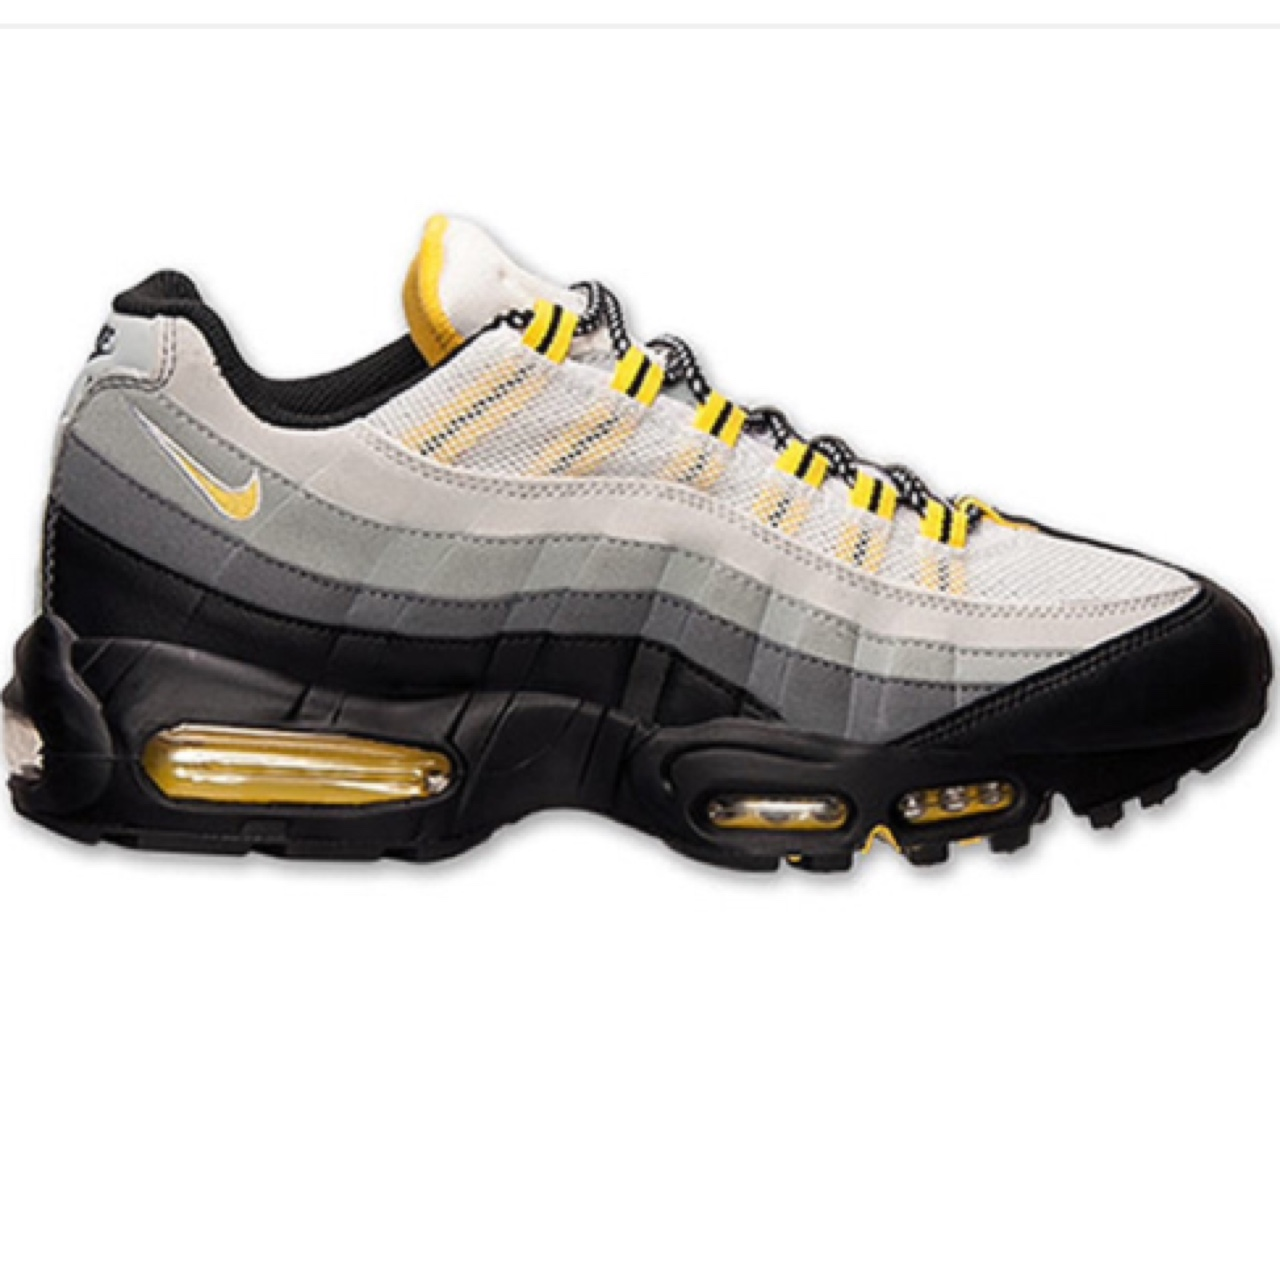 buy online 60775 0594e Nike Air Max 95.Black/Tour Yellow-Anthracite-Cool... - Depop